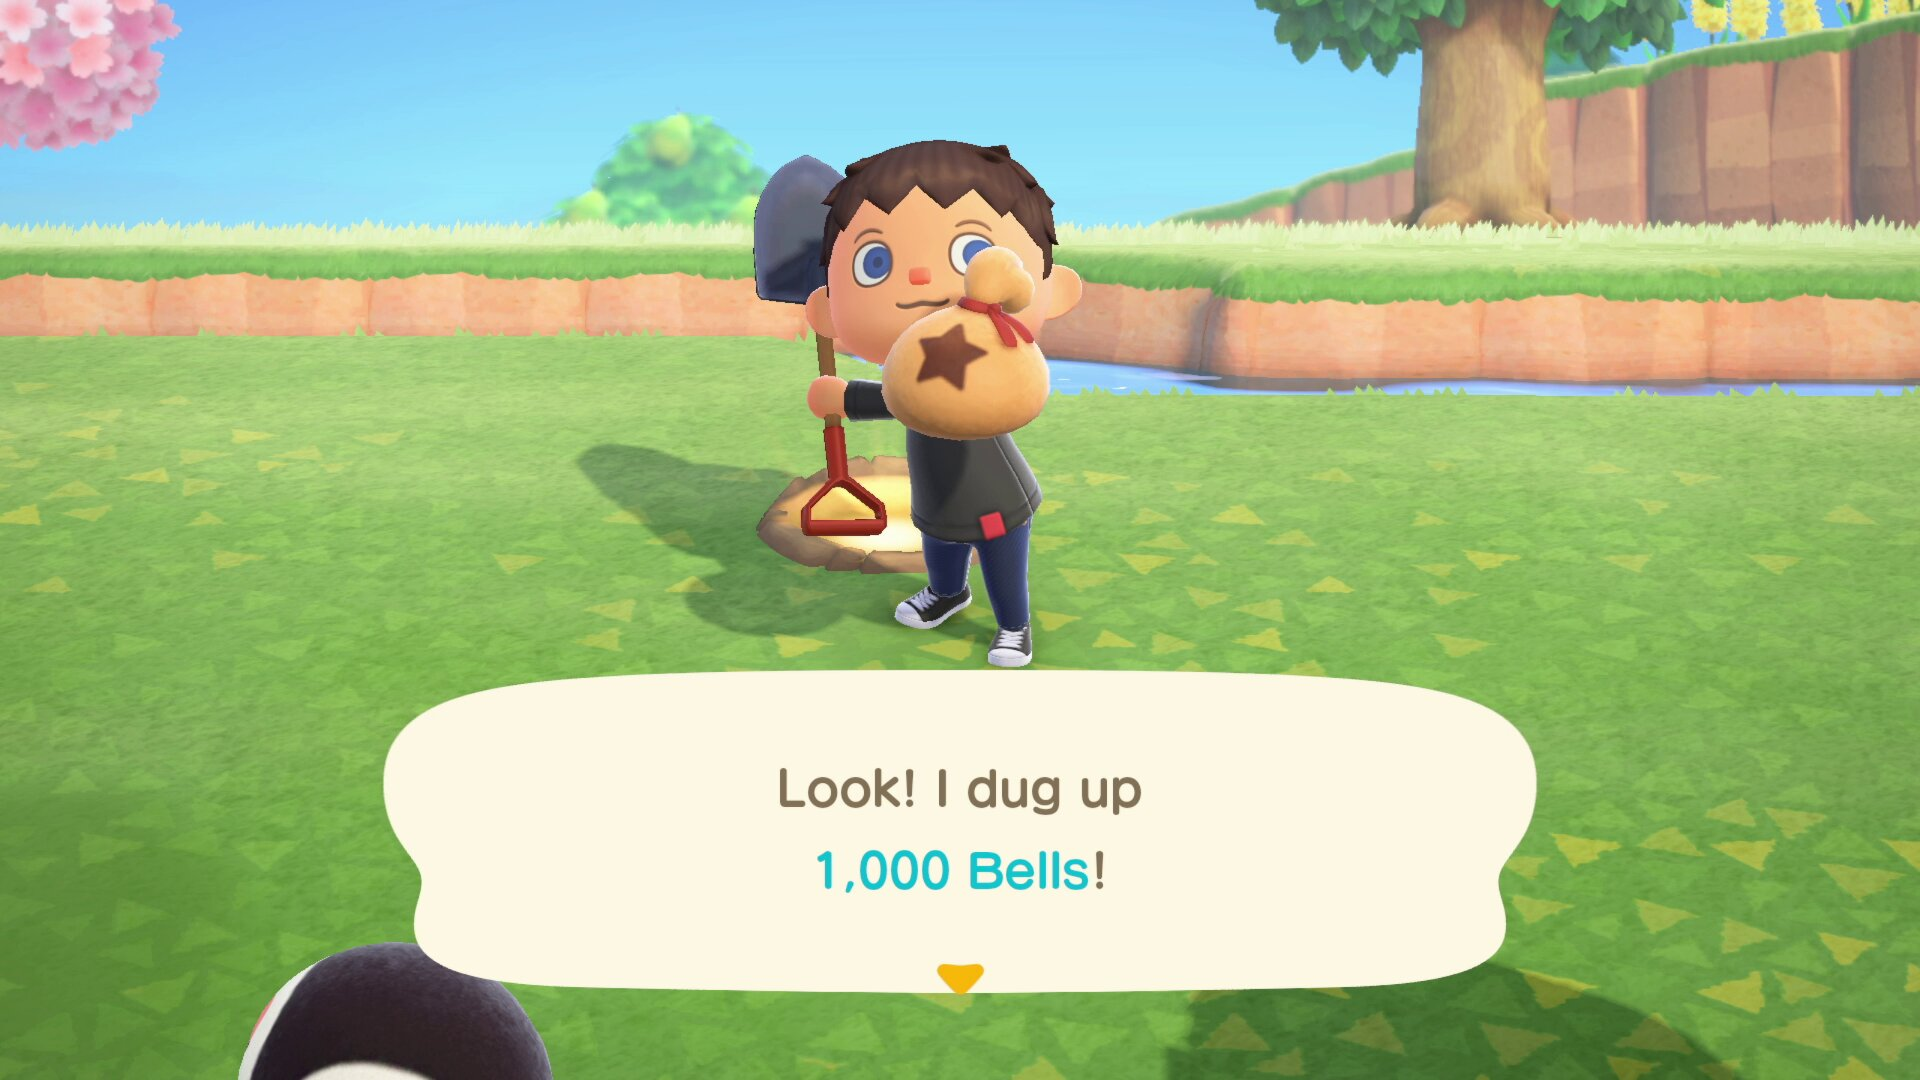 how to grow a money tree - animal crossing: New horizons